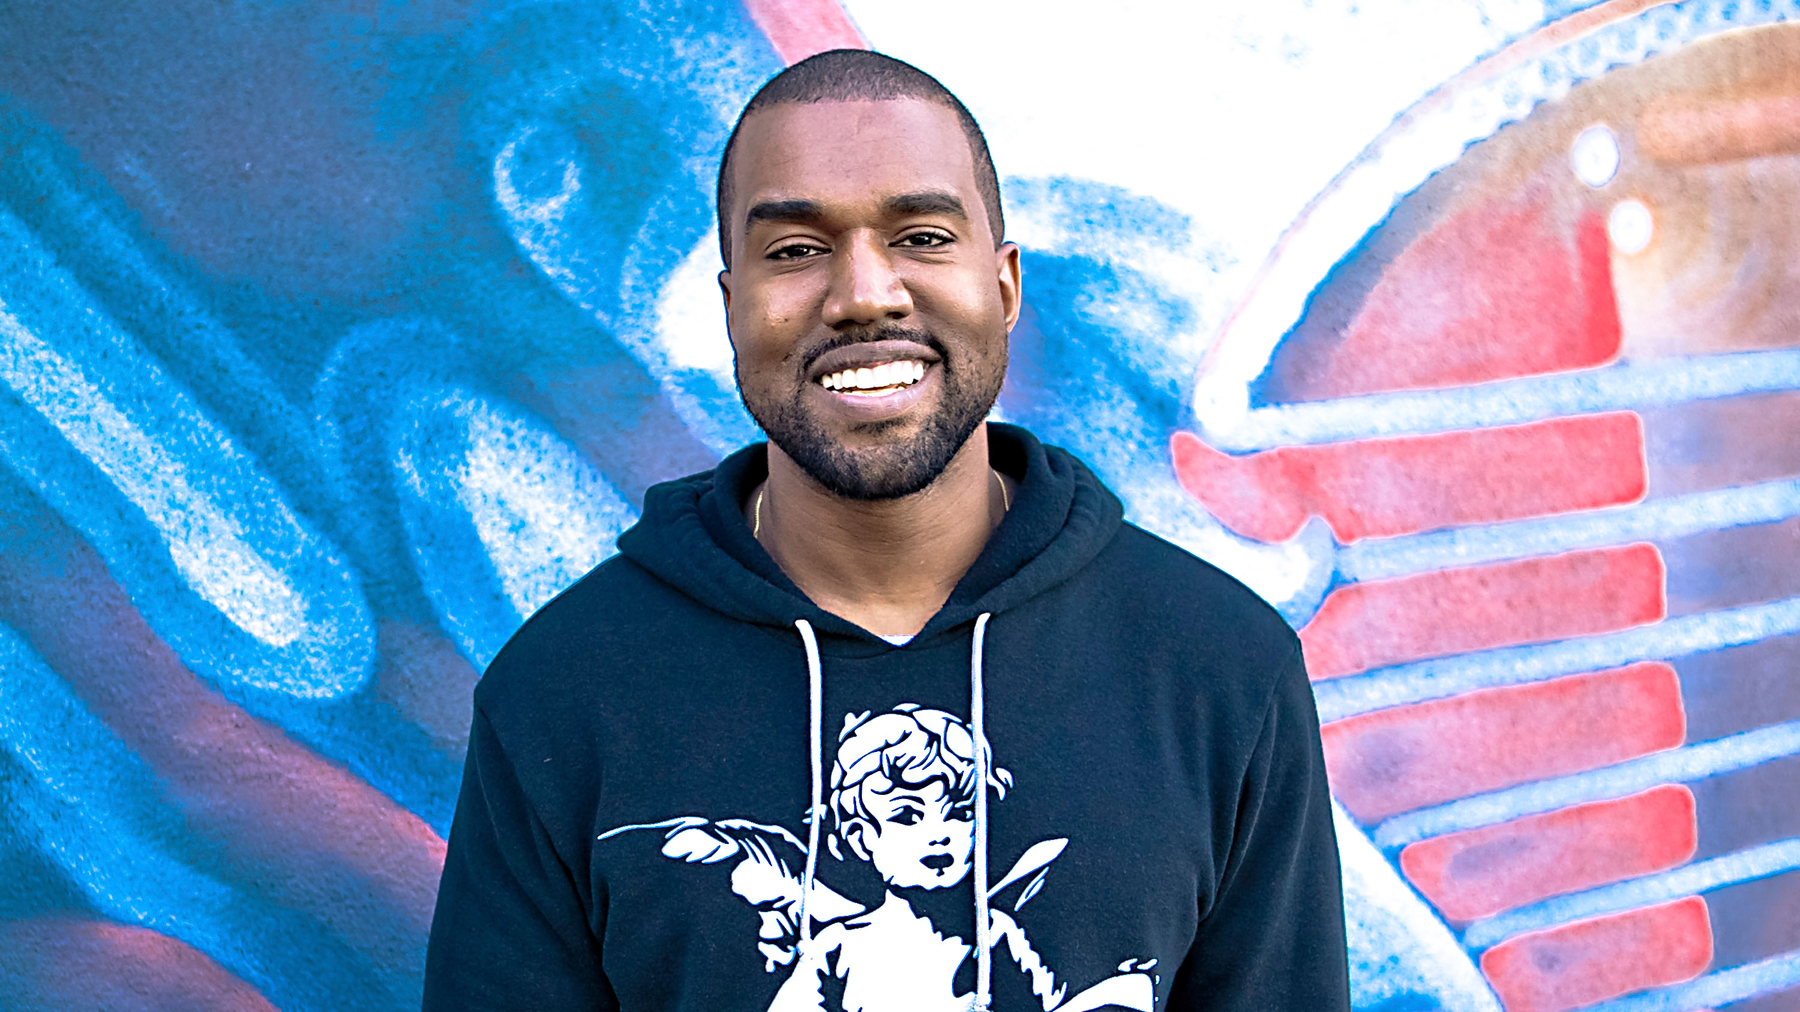 Kanye Launching New Clothing Line, Working with Q-Tip and Rick Rubin